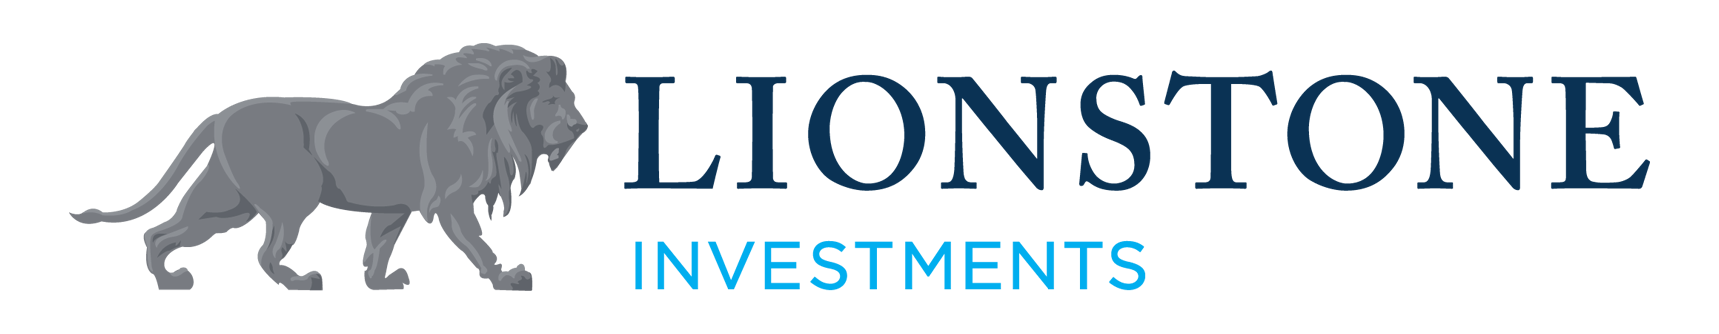 Lionstone Investments